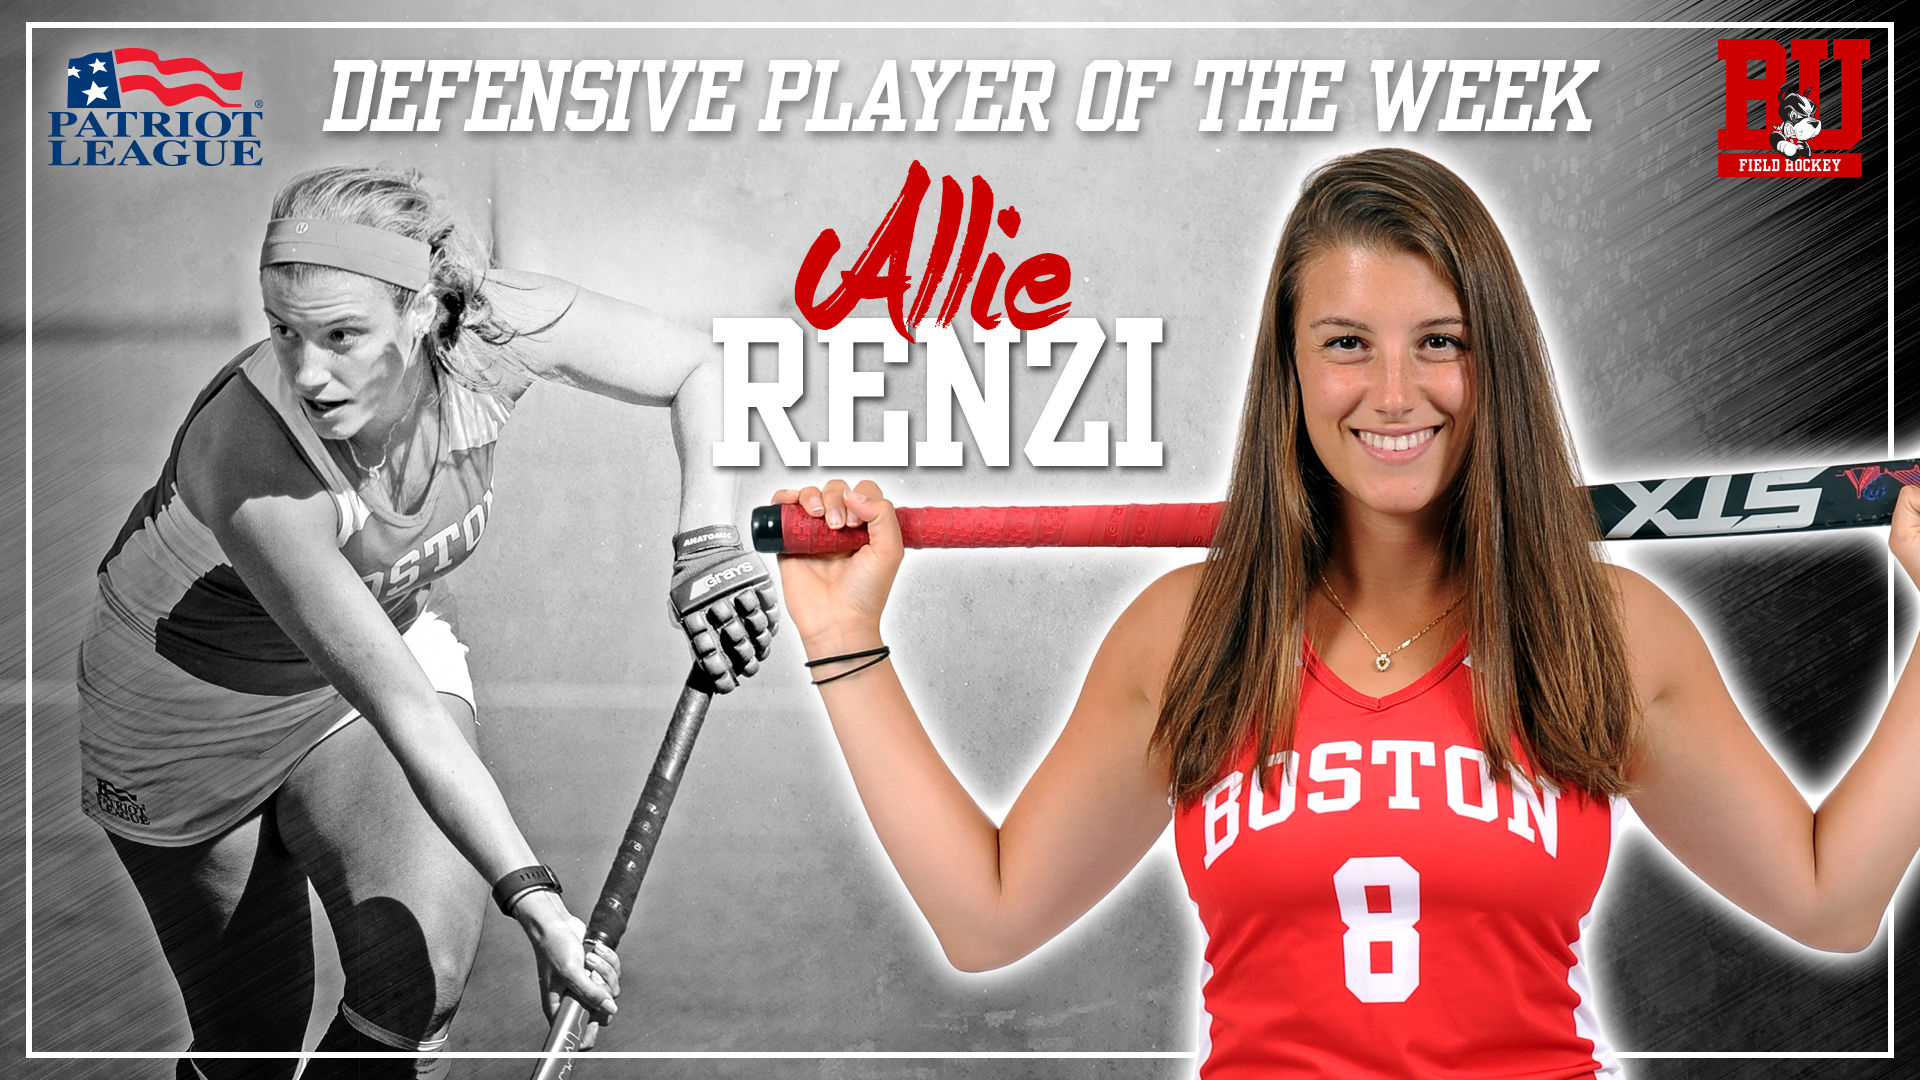 Patriot League Names Renzi Defensive Player of the Week